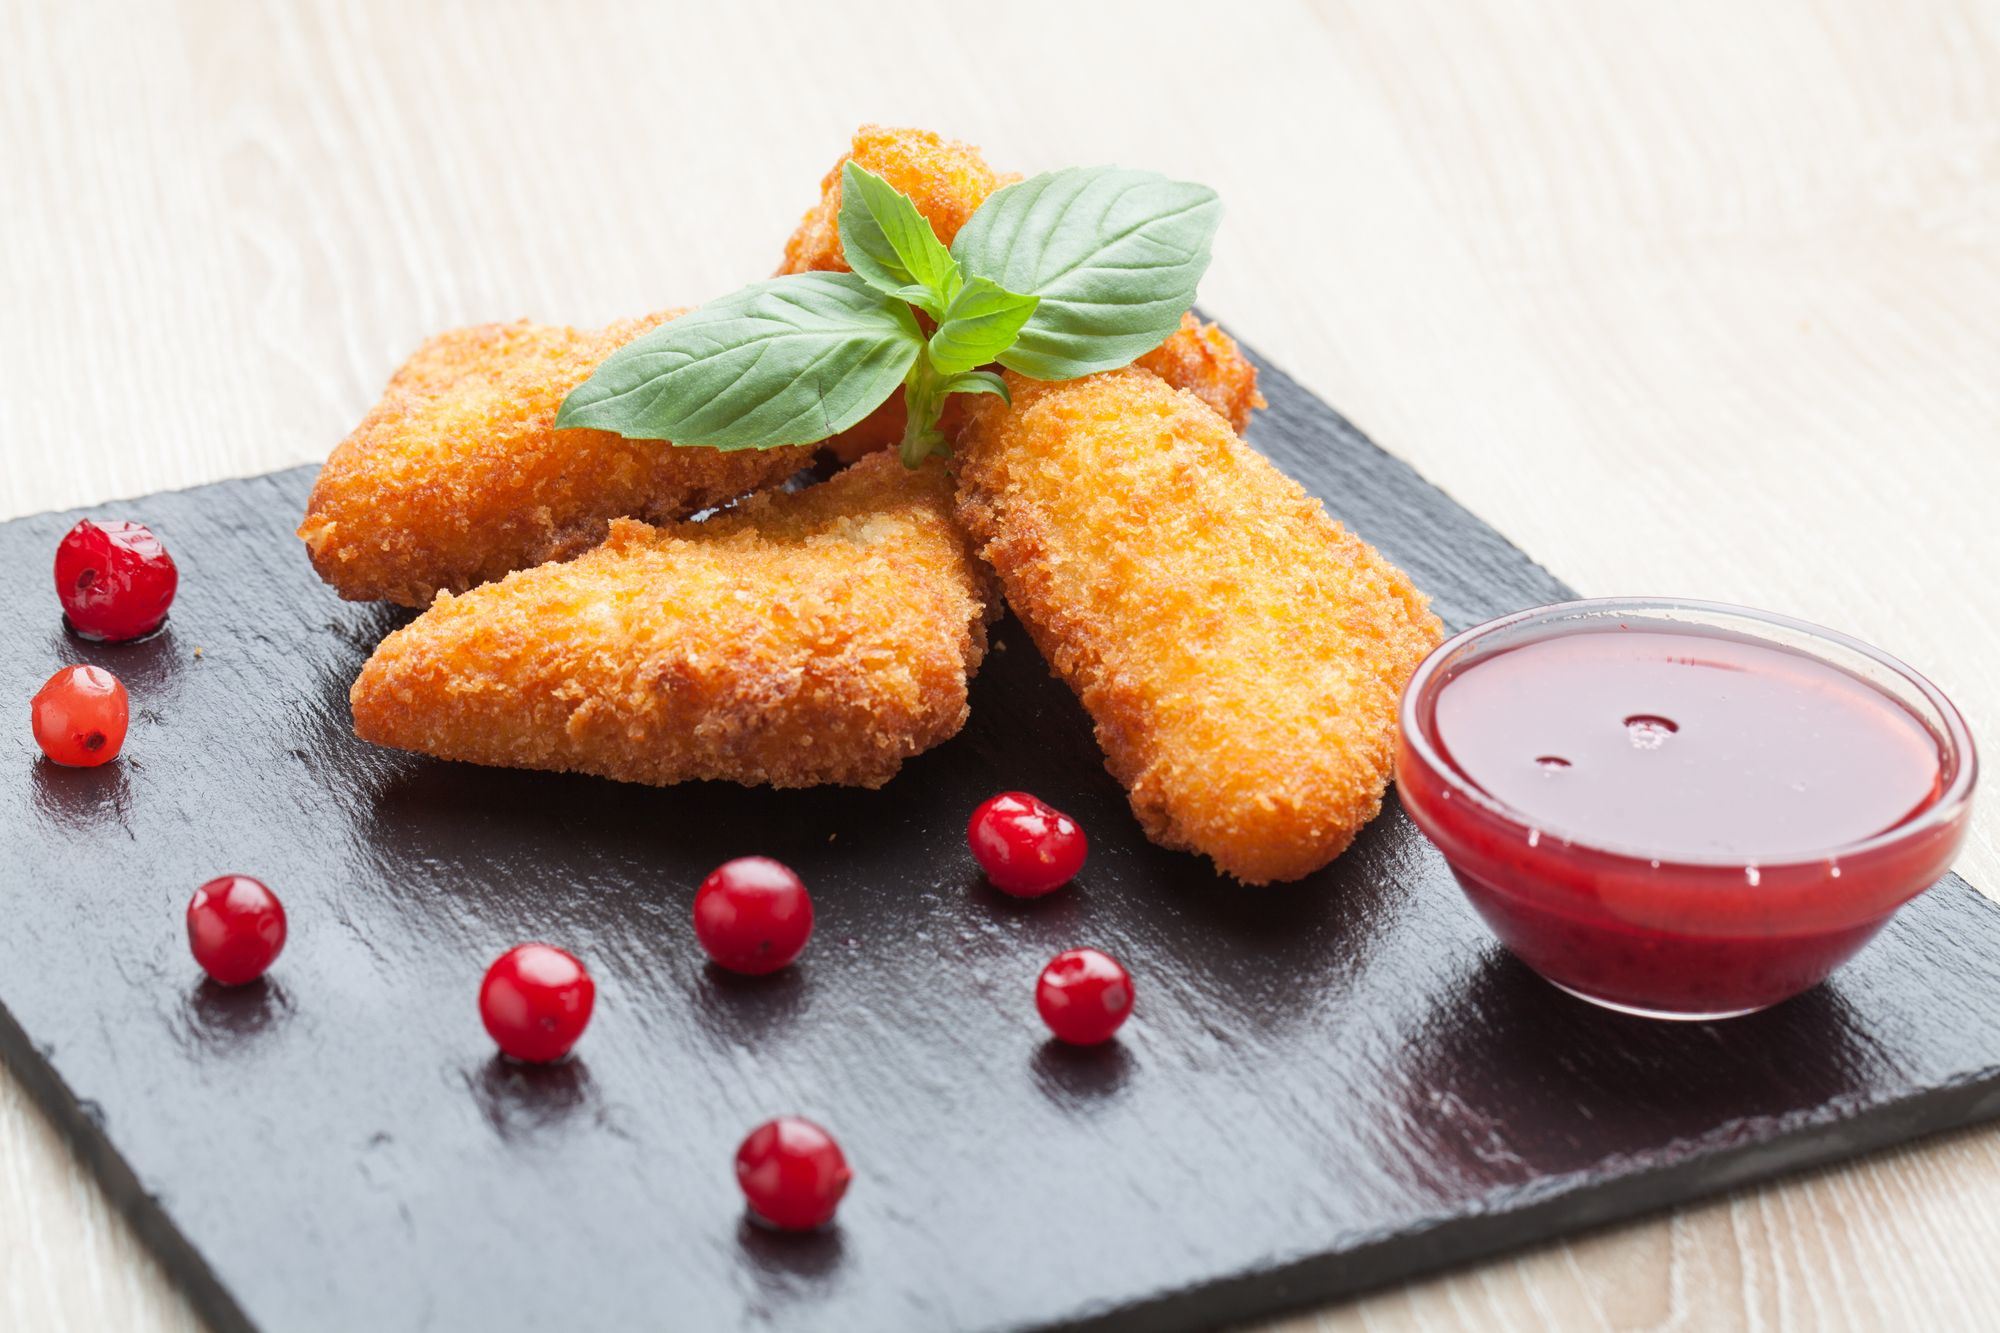 Breaded Cheese with Berry Compote